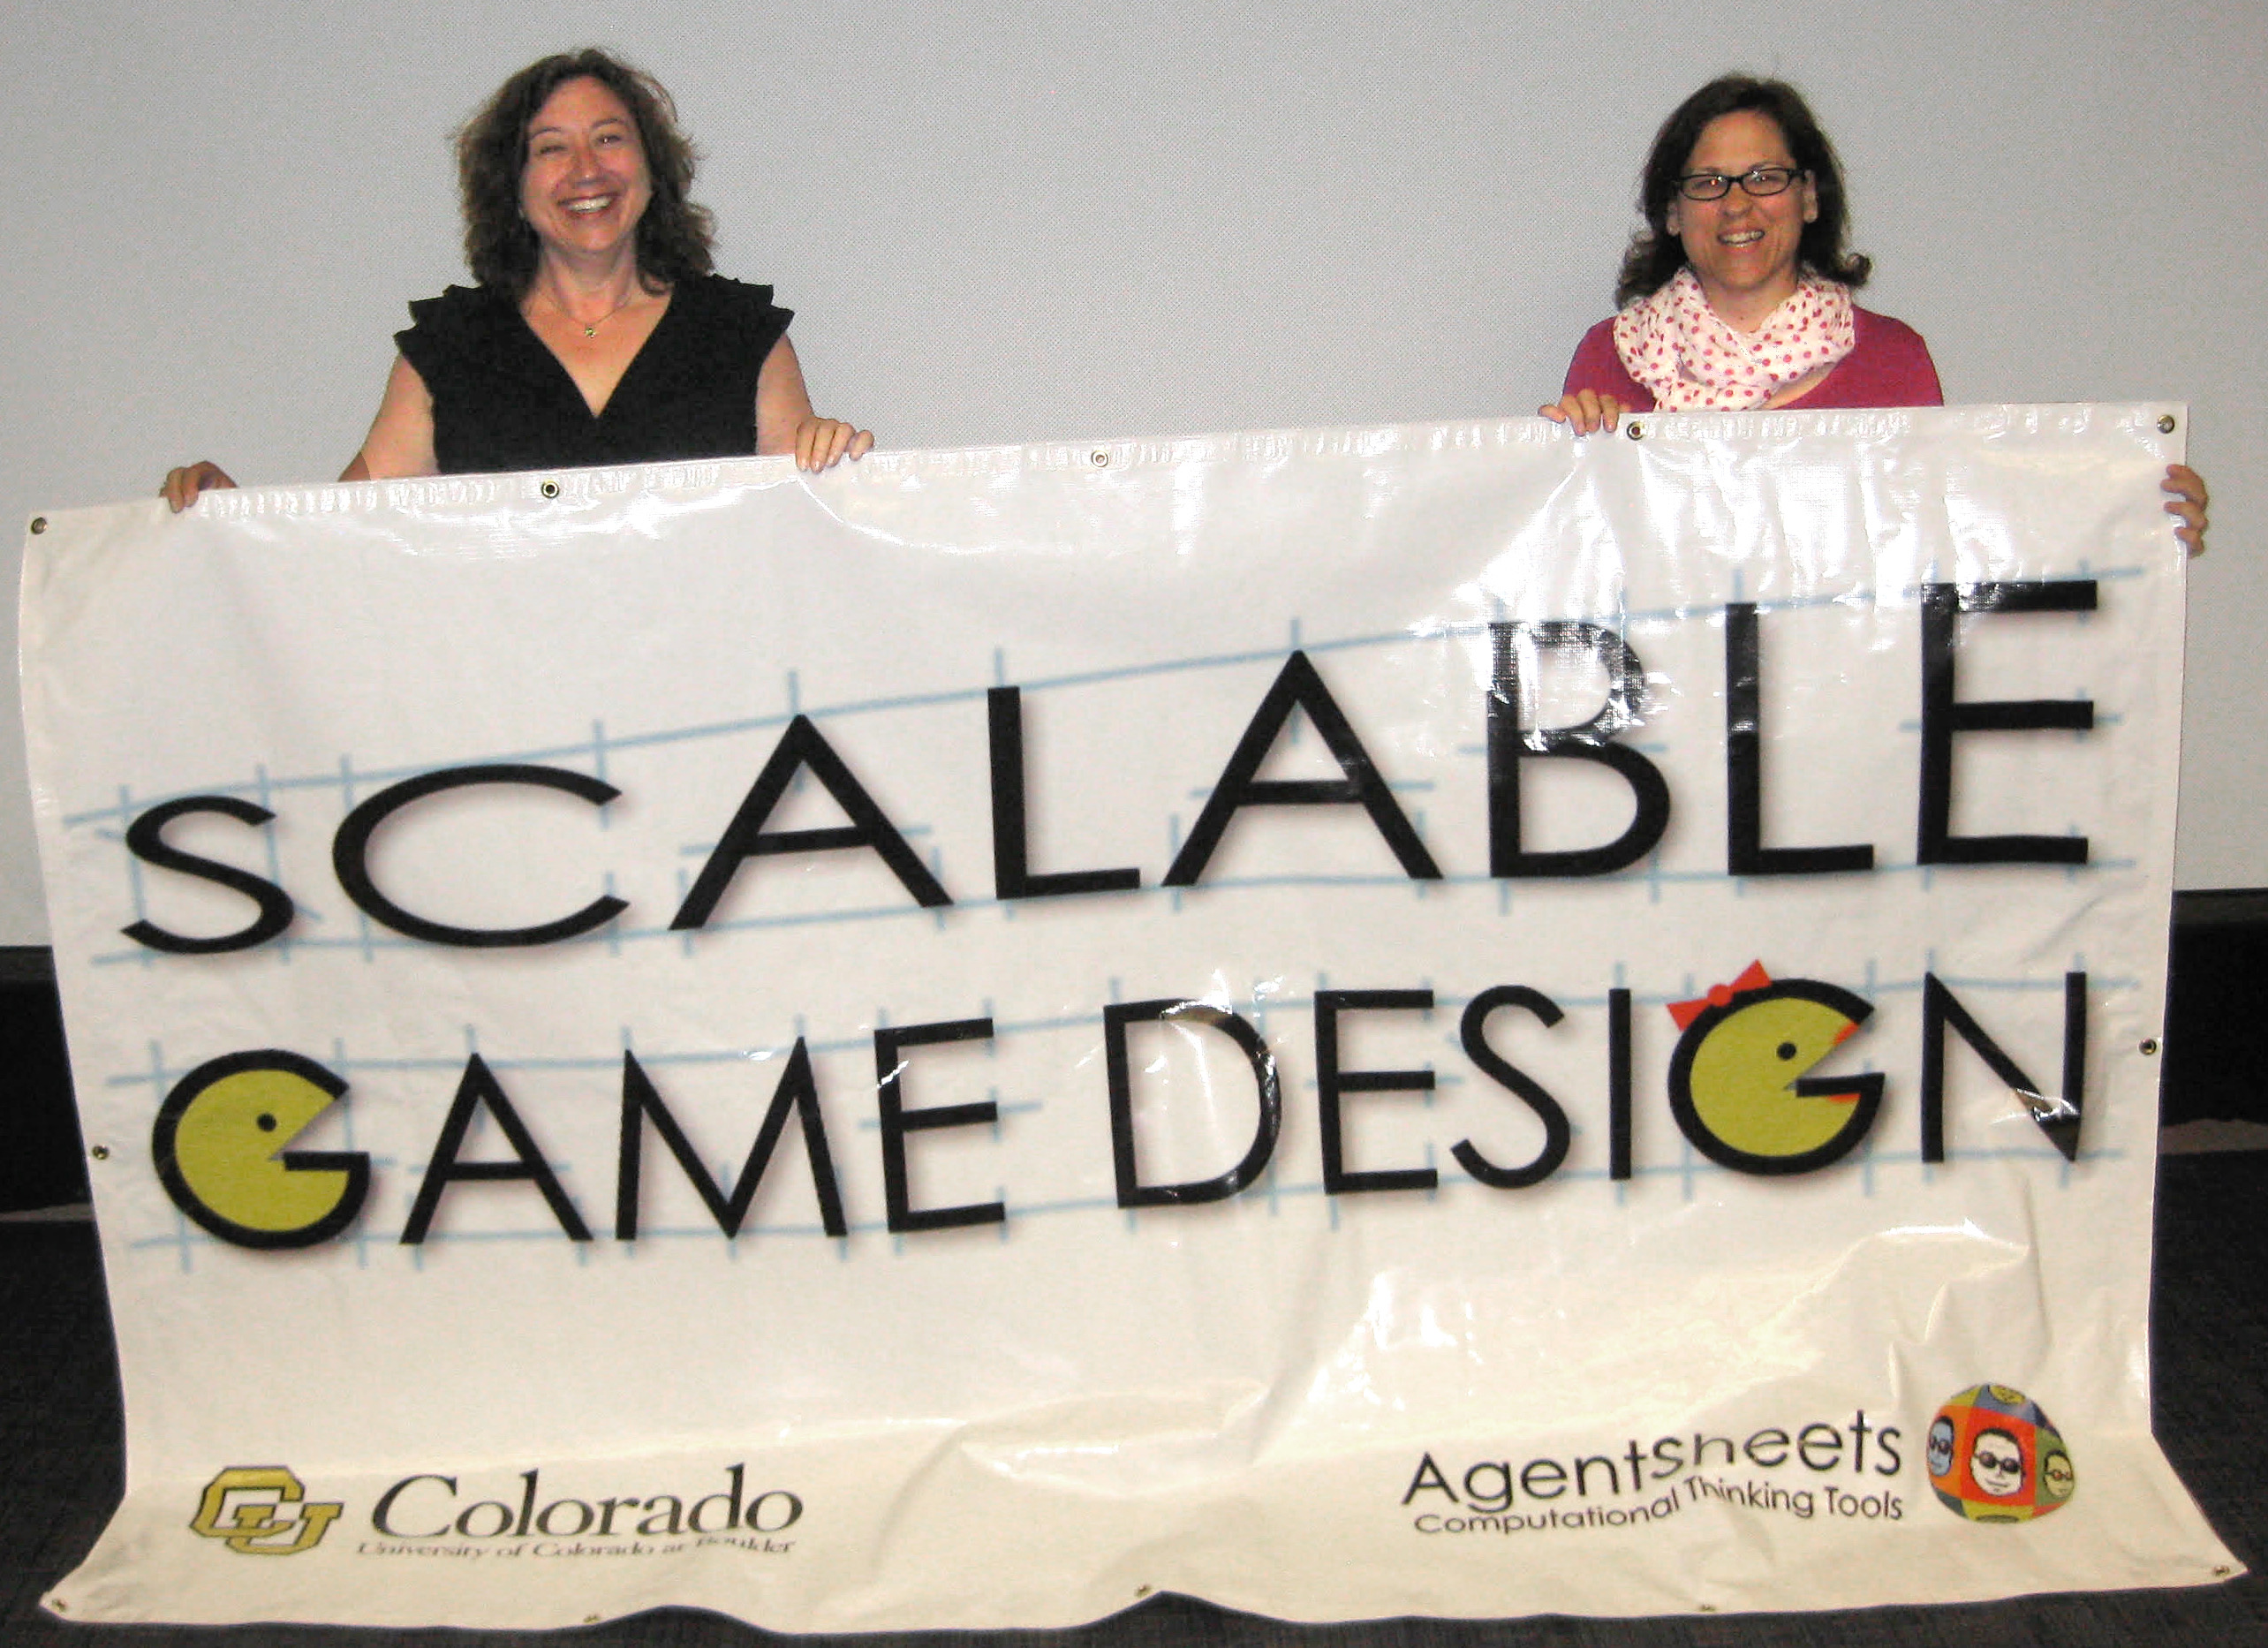 Two founder of Scalable Game Design holding a Scalable Game Design sign.